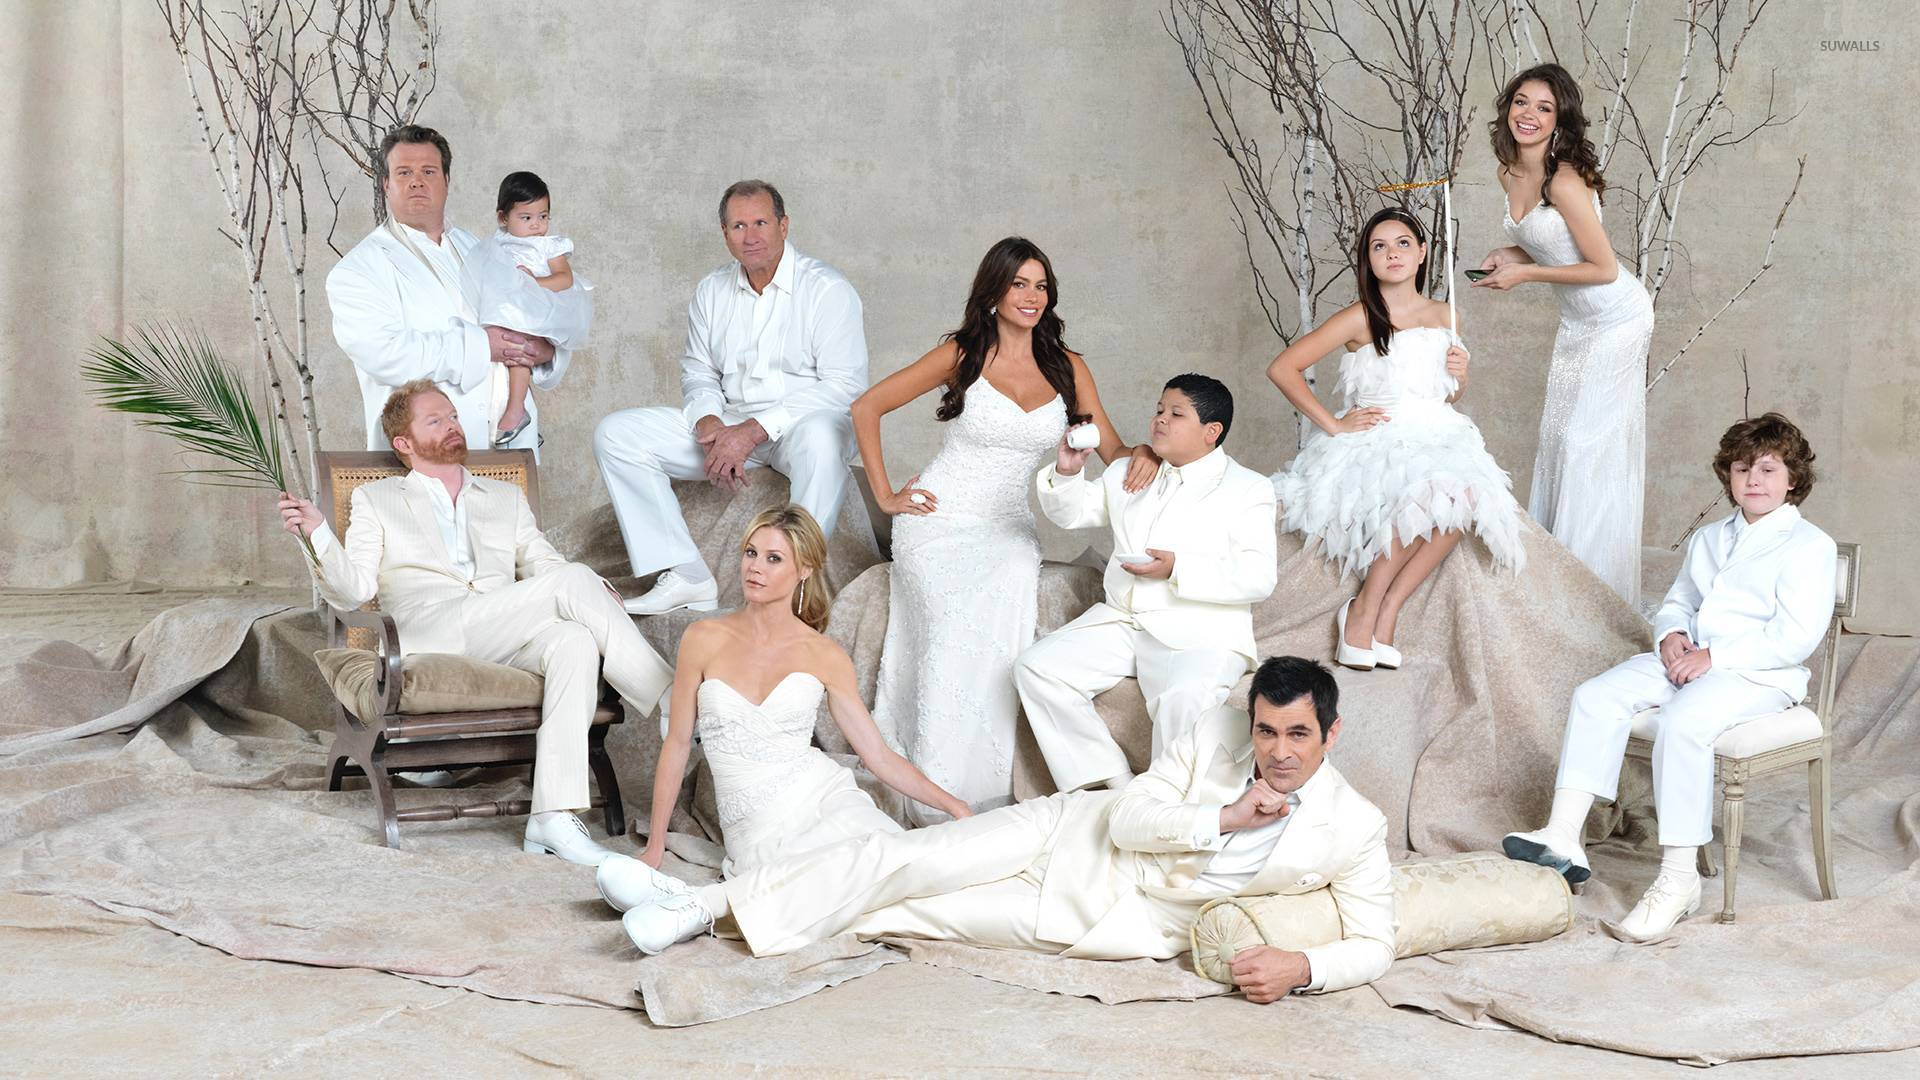 modern family images wallpaper - photo #8